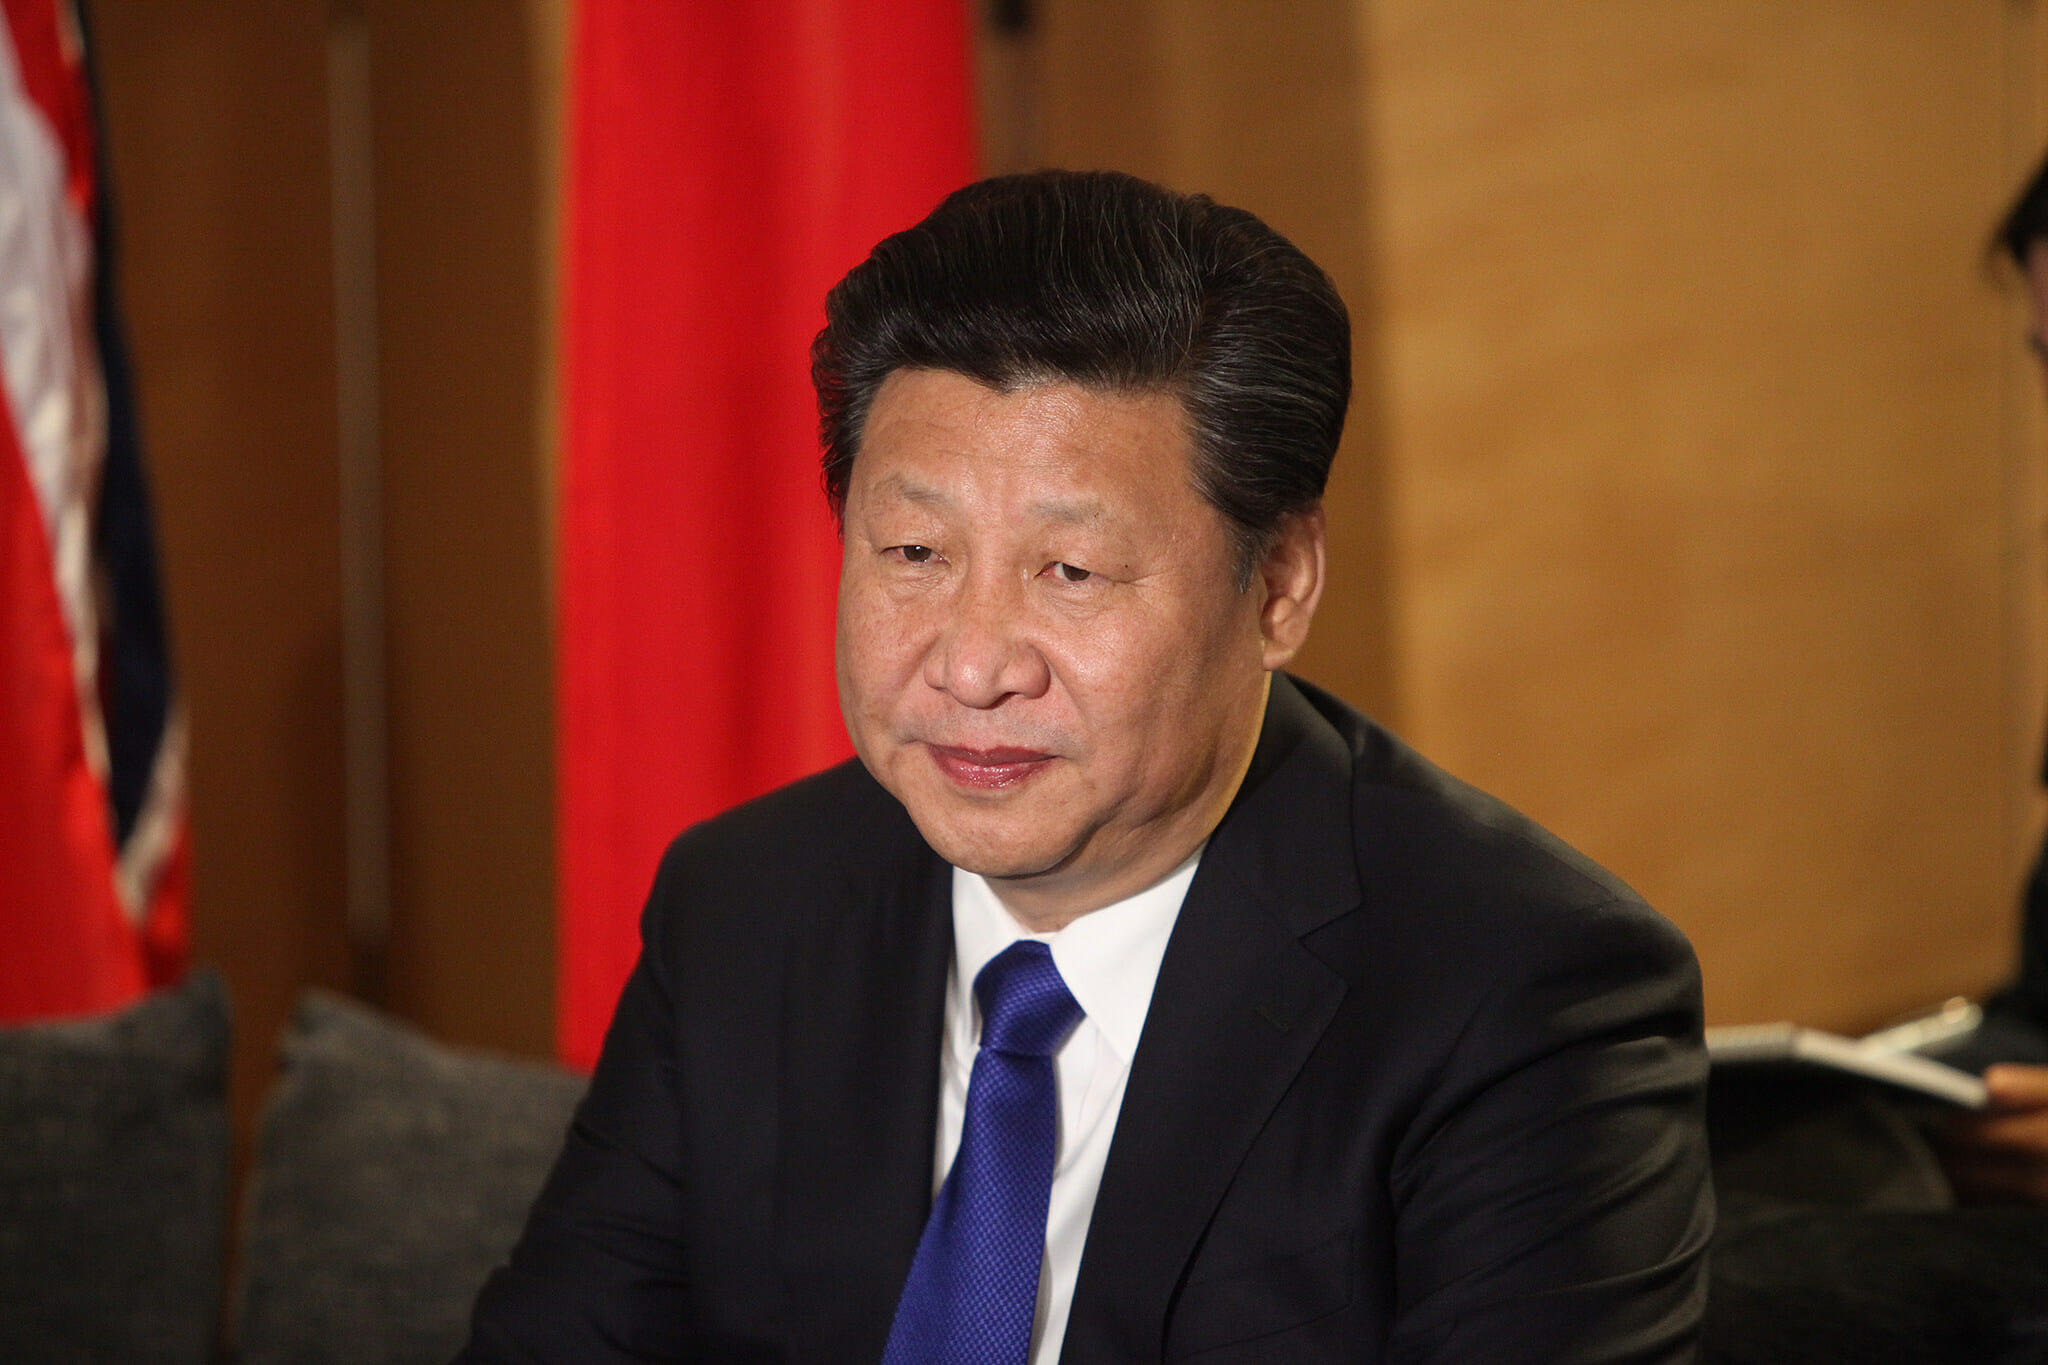 Xi Calls Situation Grave as China Scrambles to Contain Virus